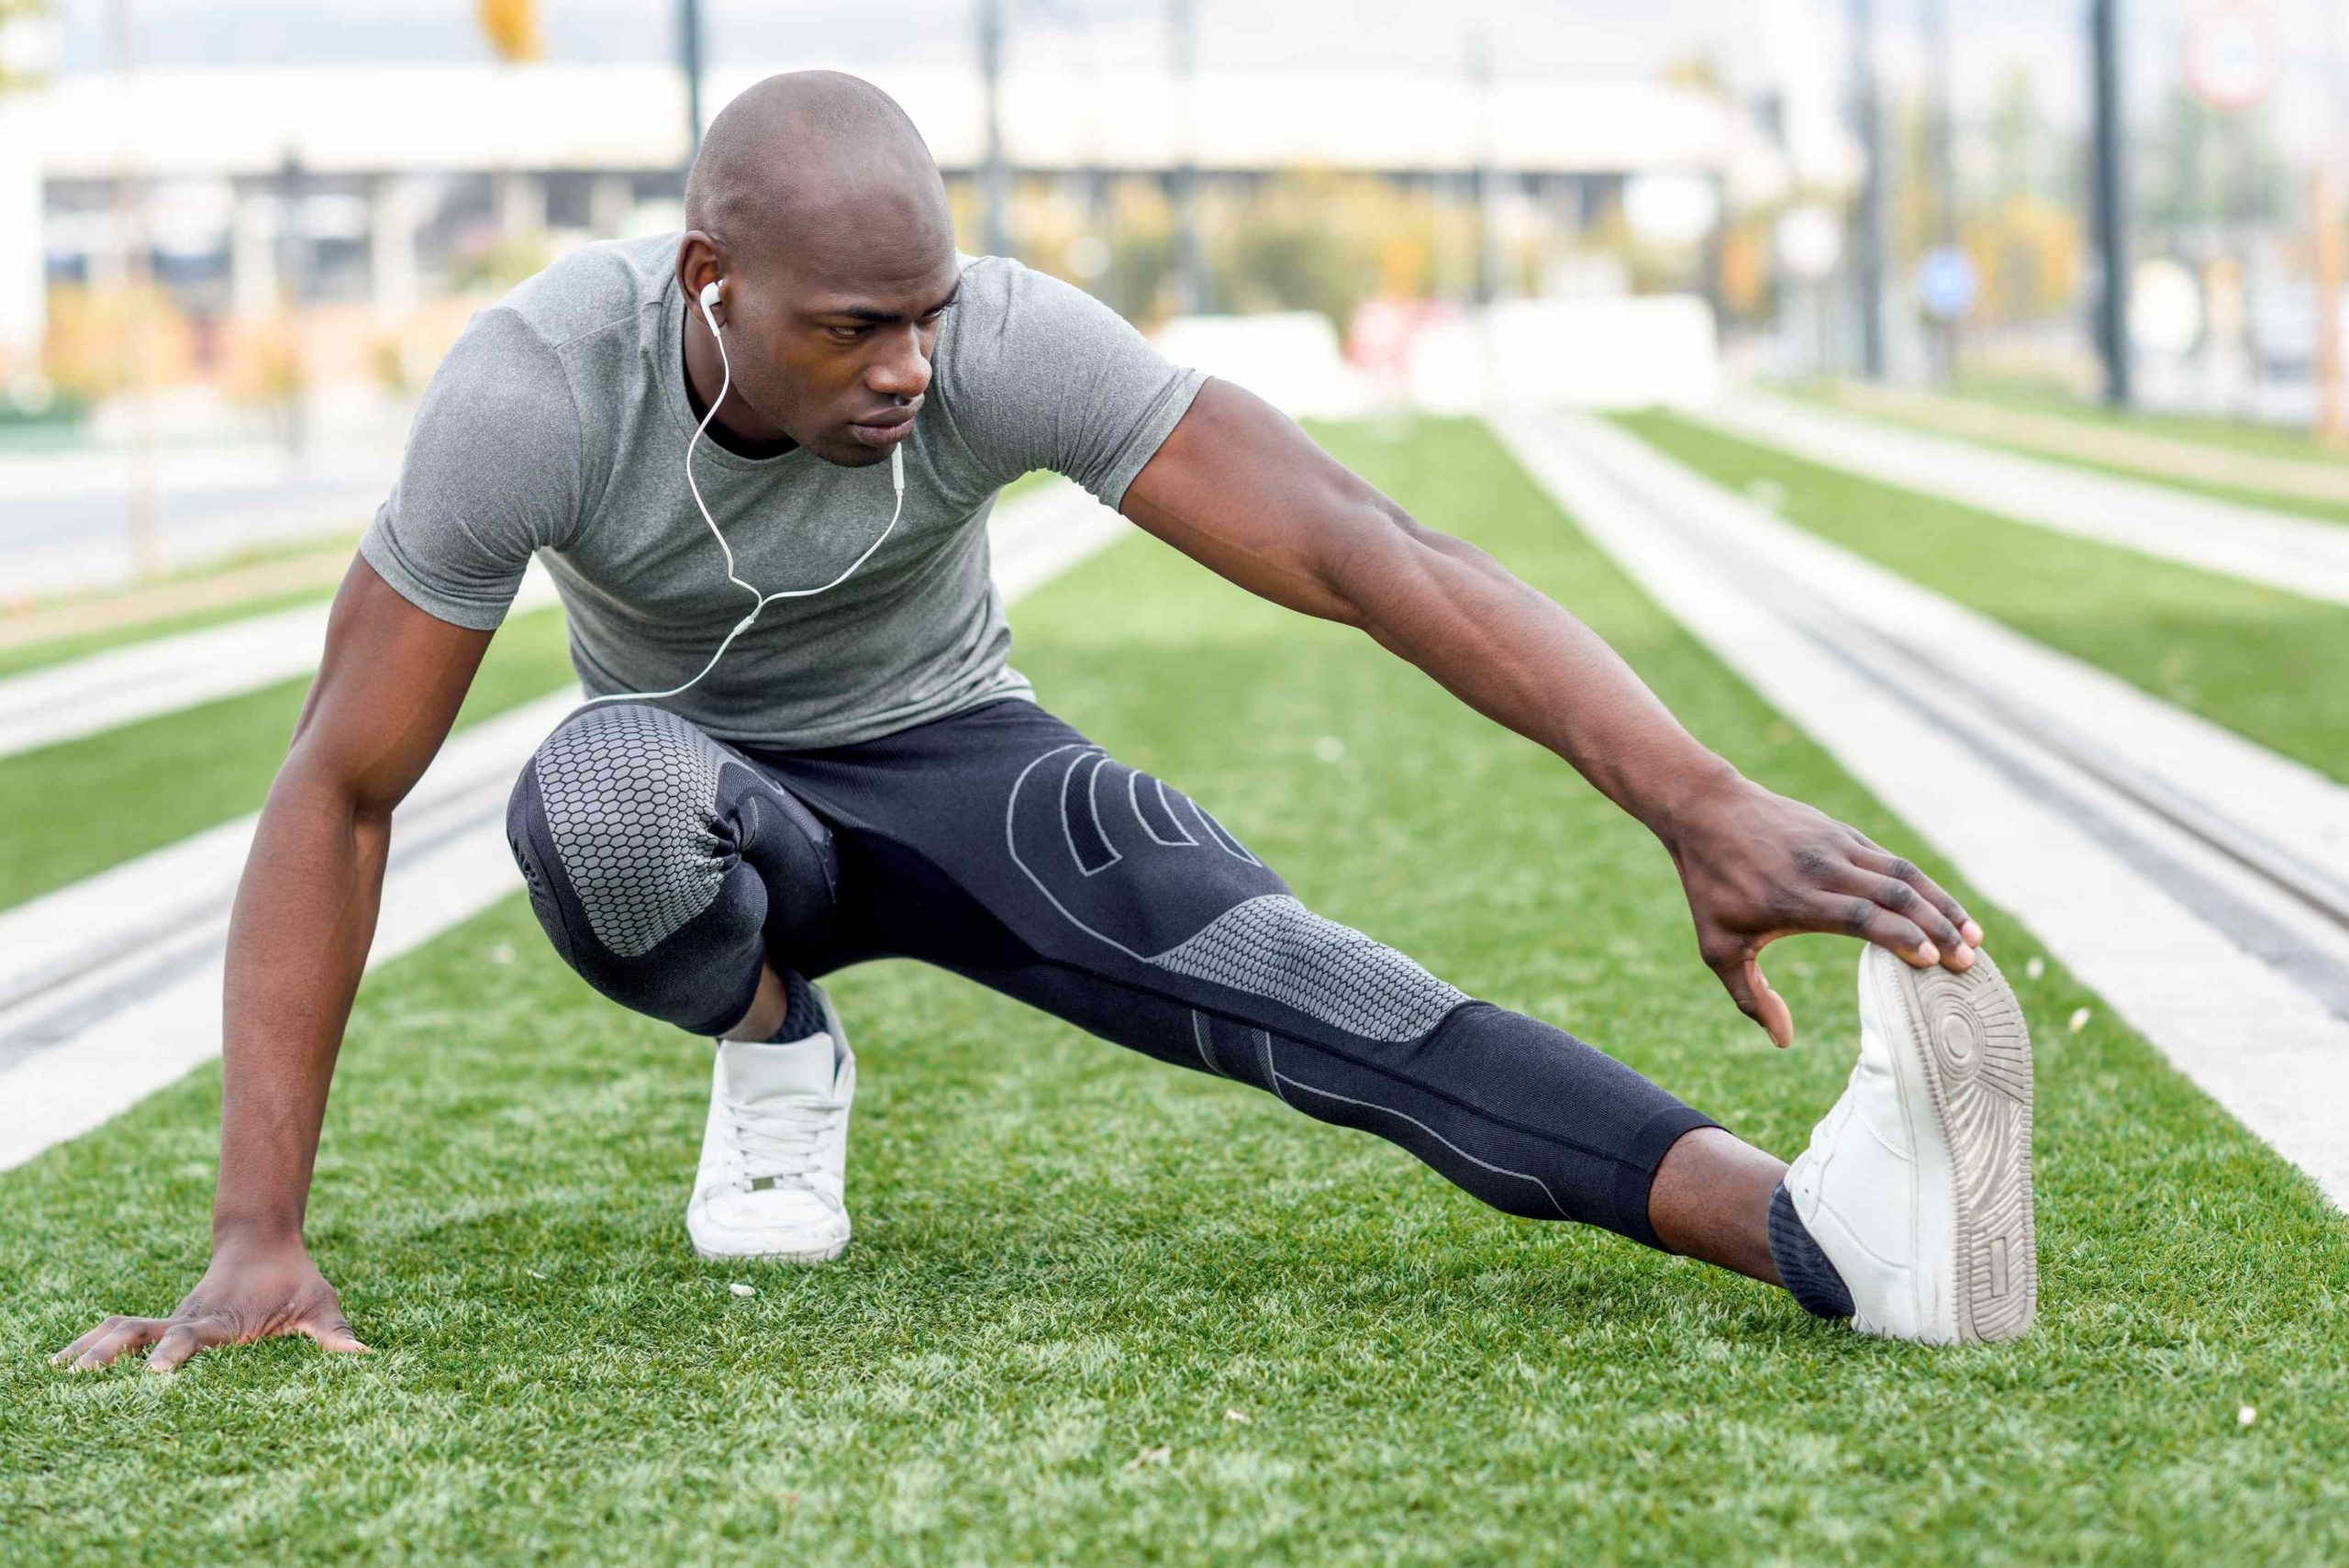 Music makes the workout more effective